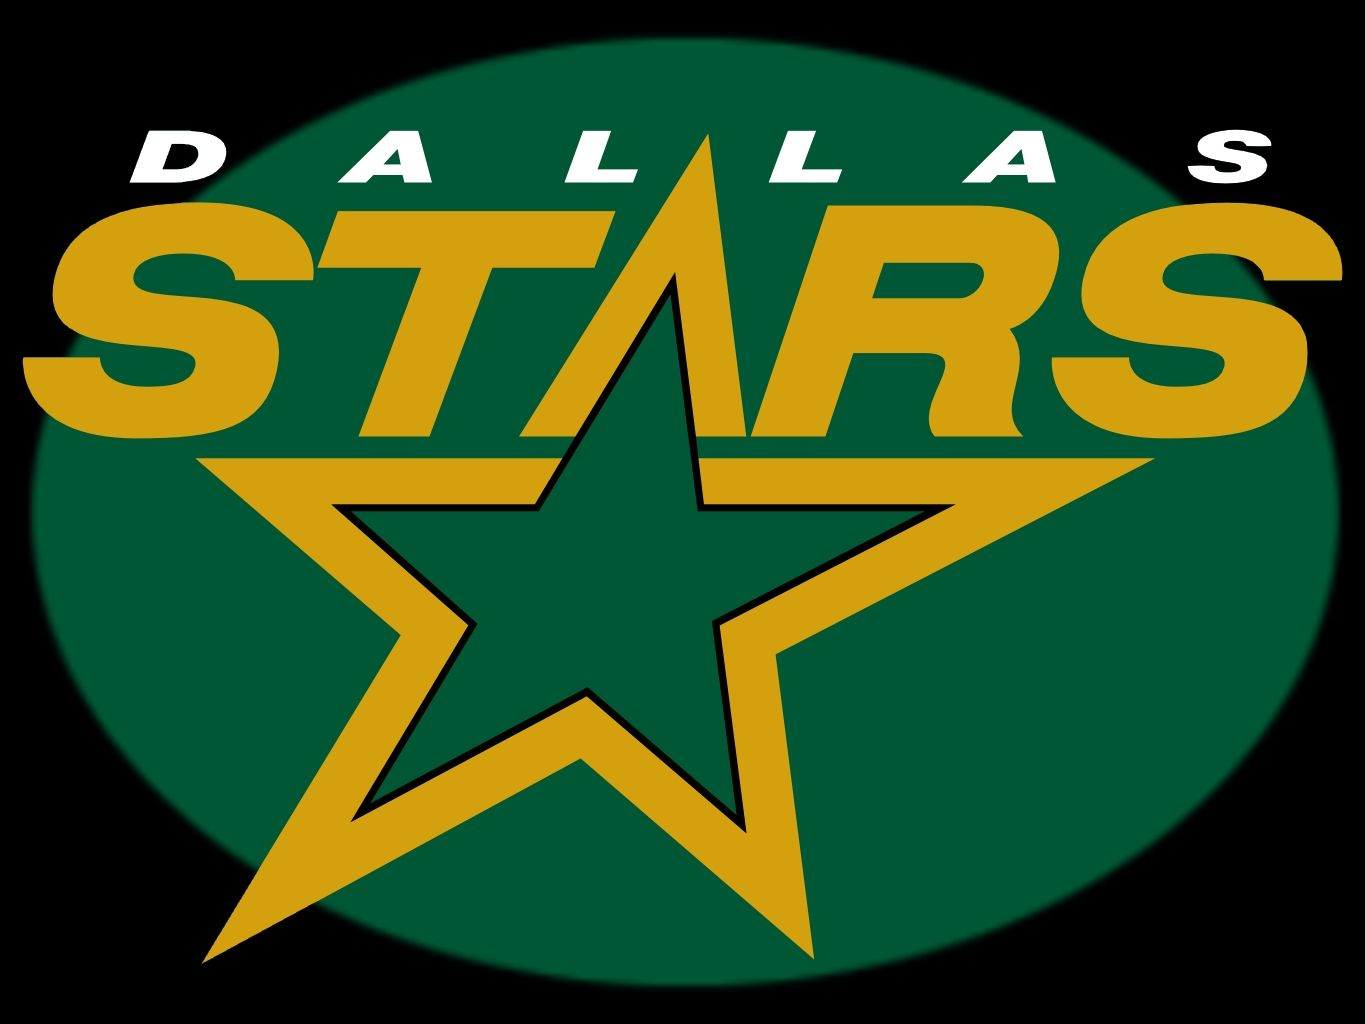 Dallas Stars, Dallas Texas want to see a hockey game was